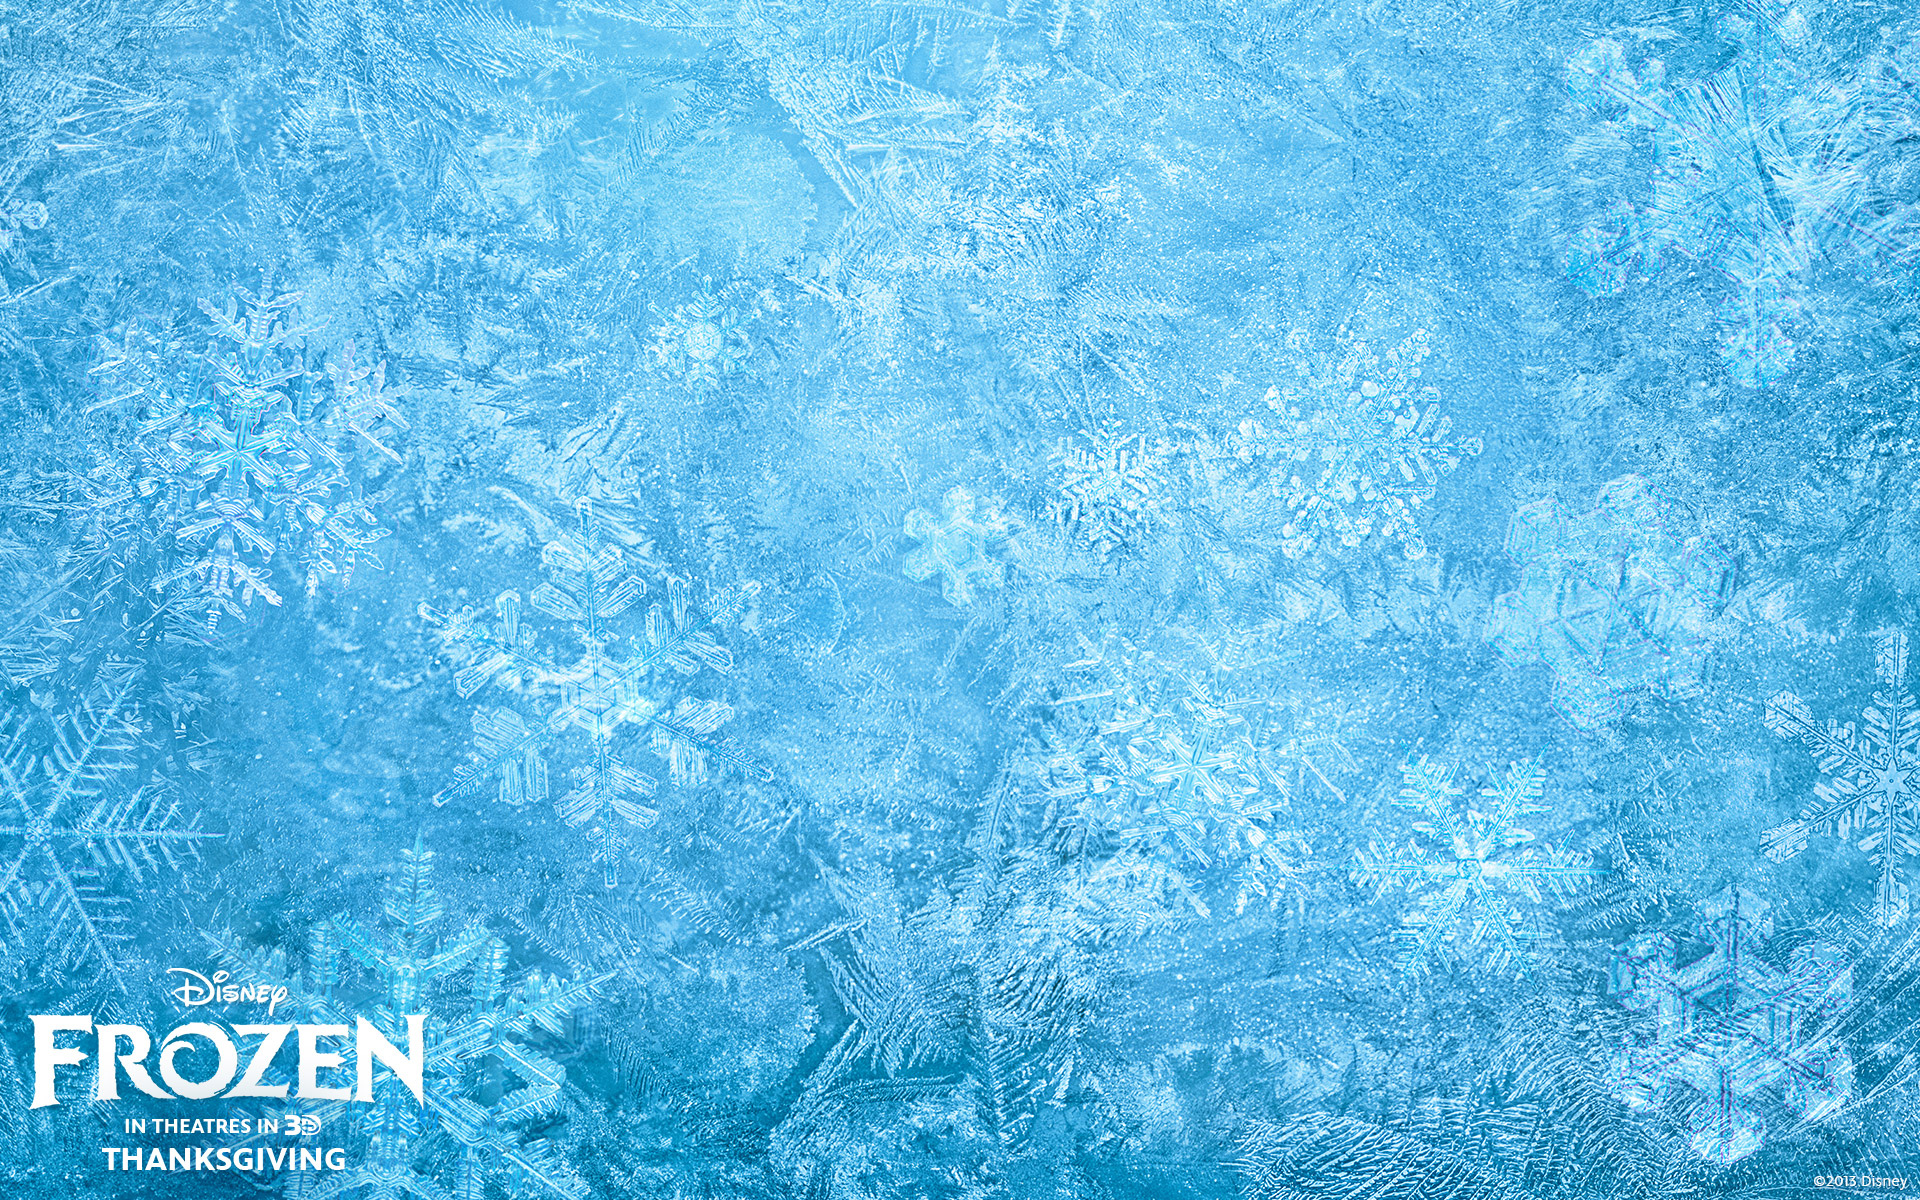 Frozen Disneys Frozen CG animated movie wallpaper image background 1920x1200